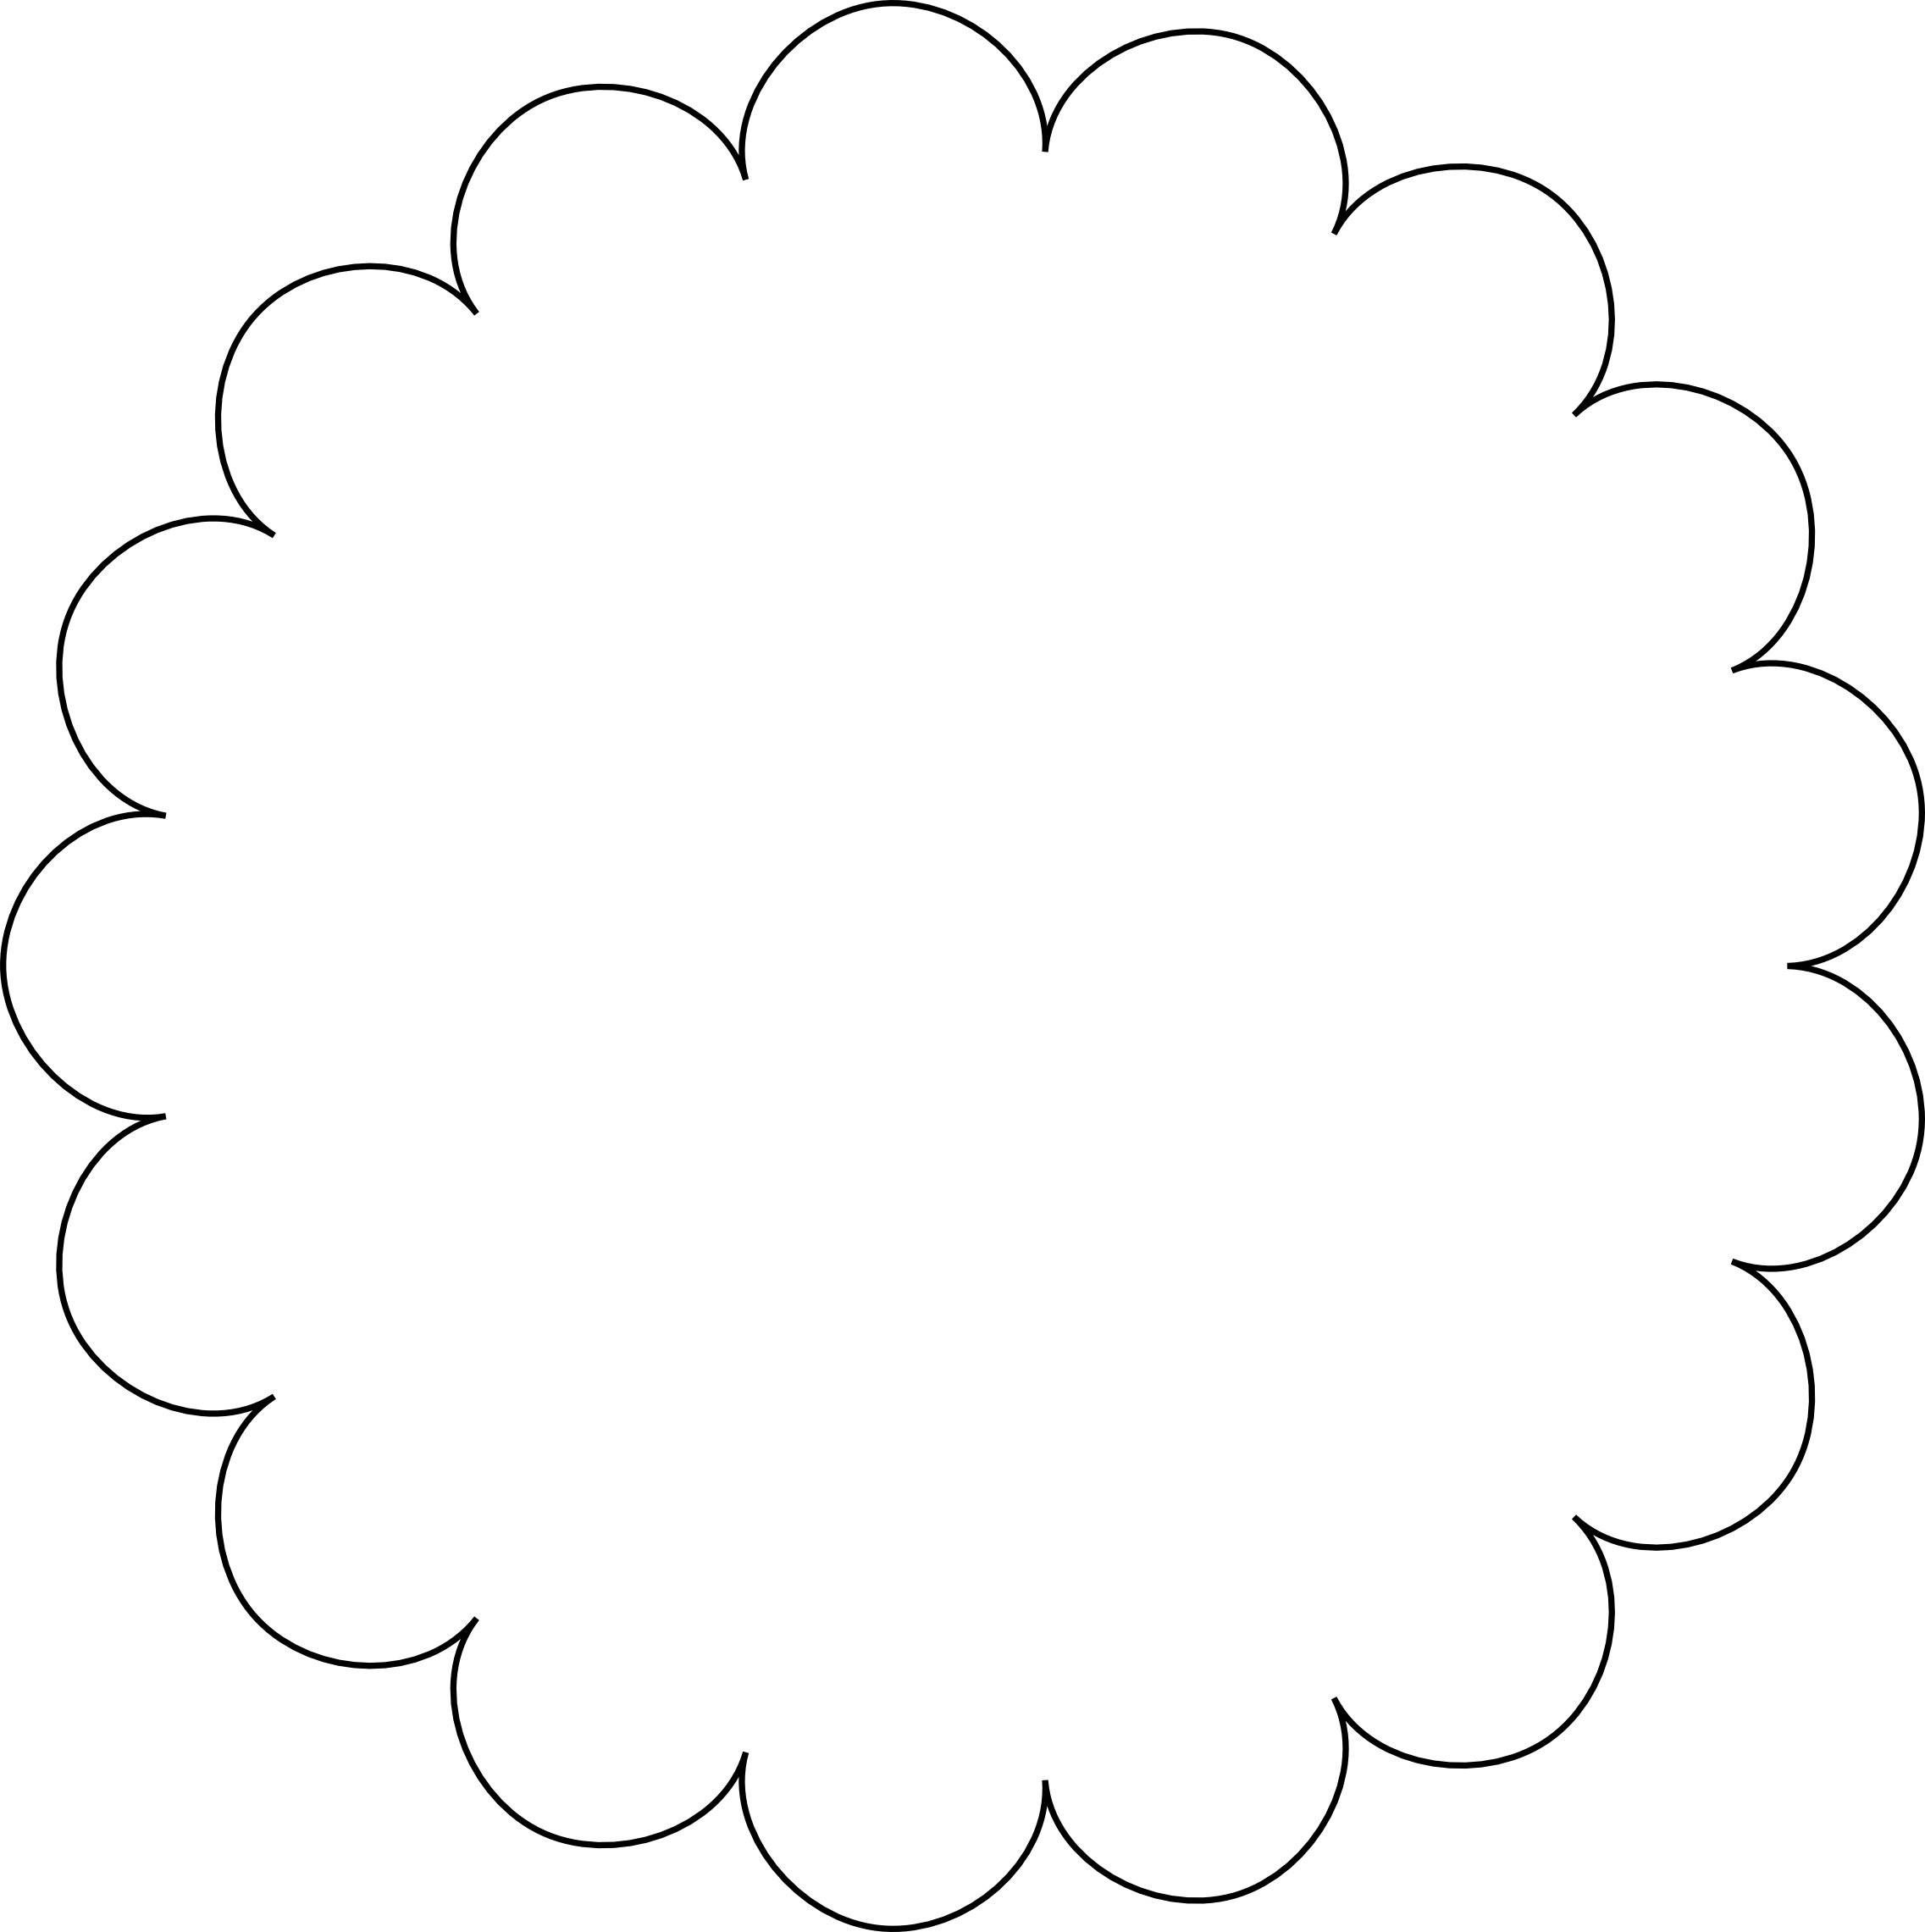 Scallopped edge clipart clipart freeuse library Scalloped Edge Border Clipart | Clip Art and Line Drawings ... clipart freeuse library